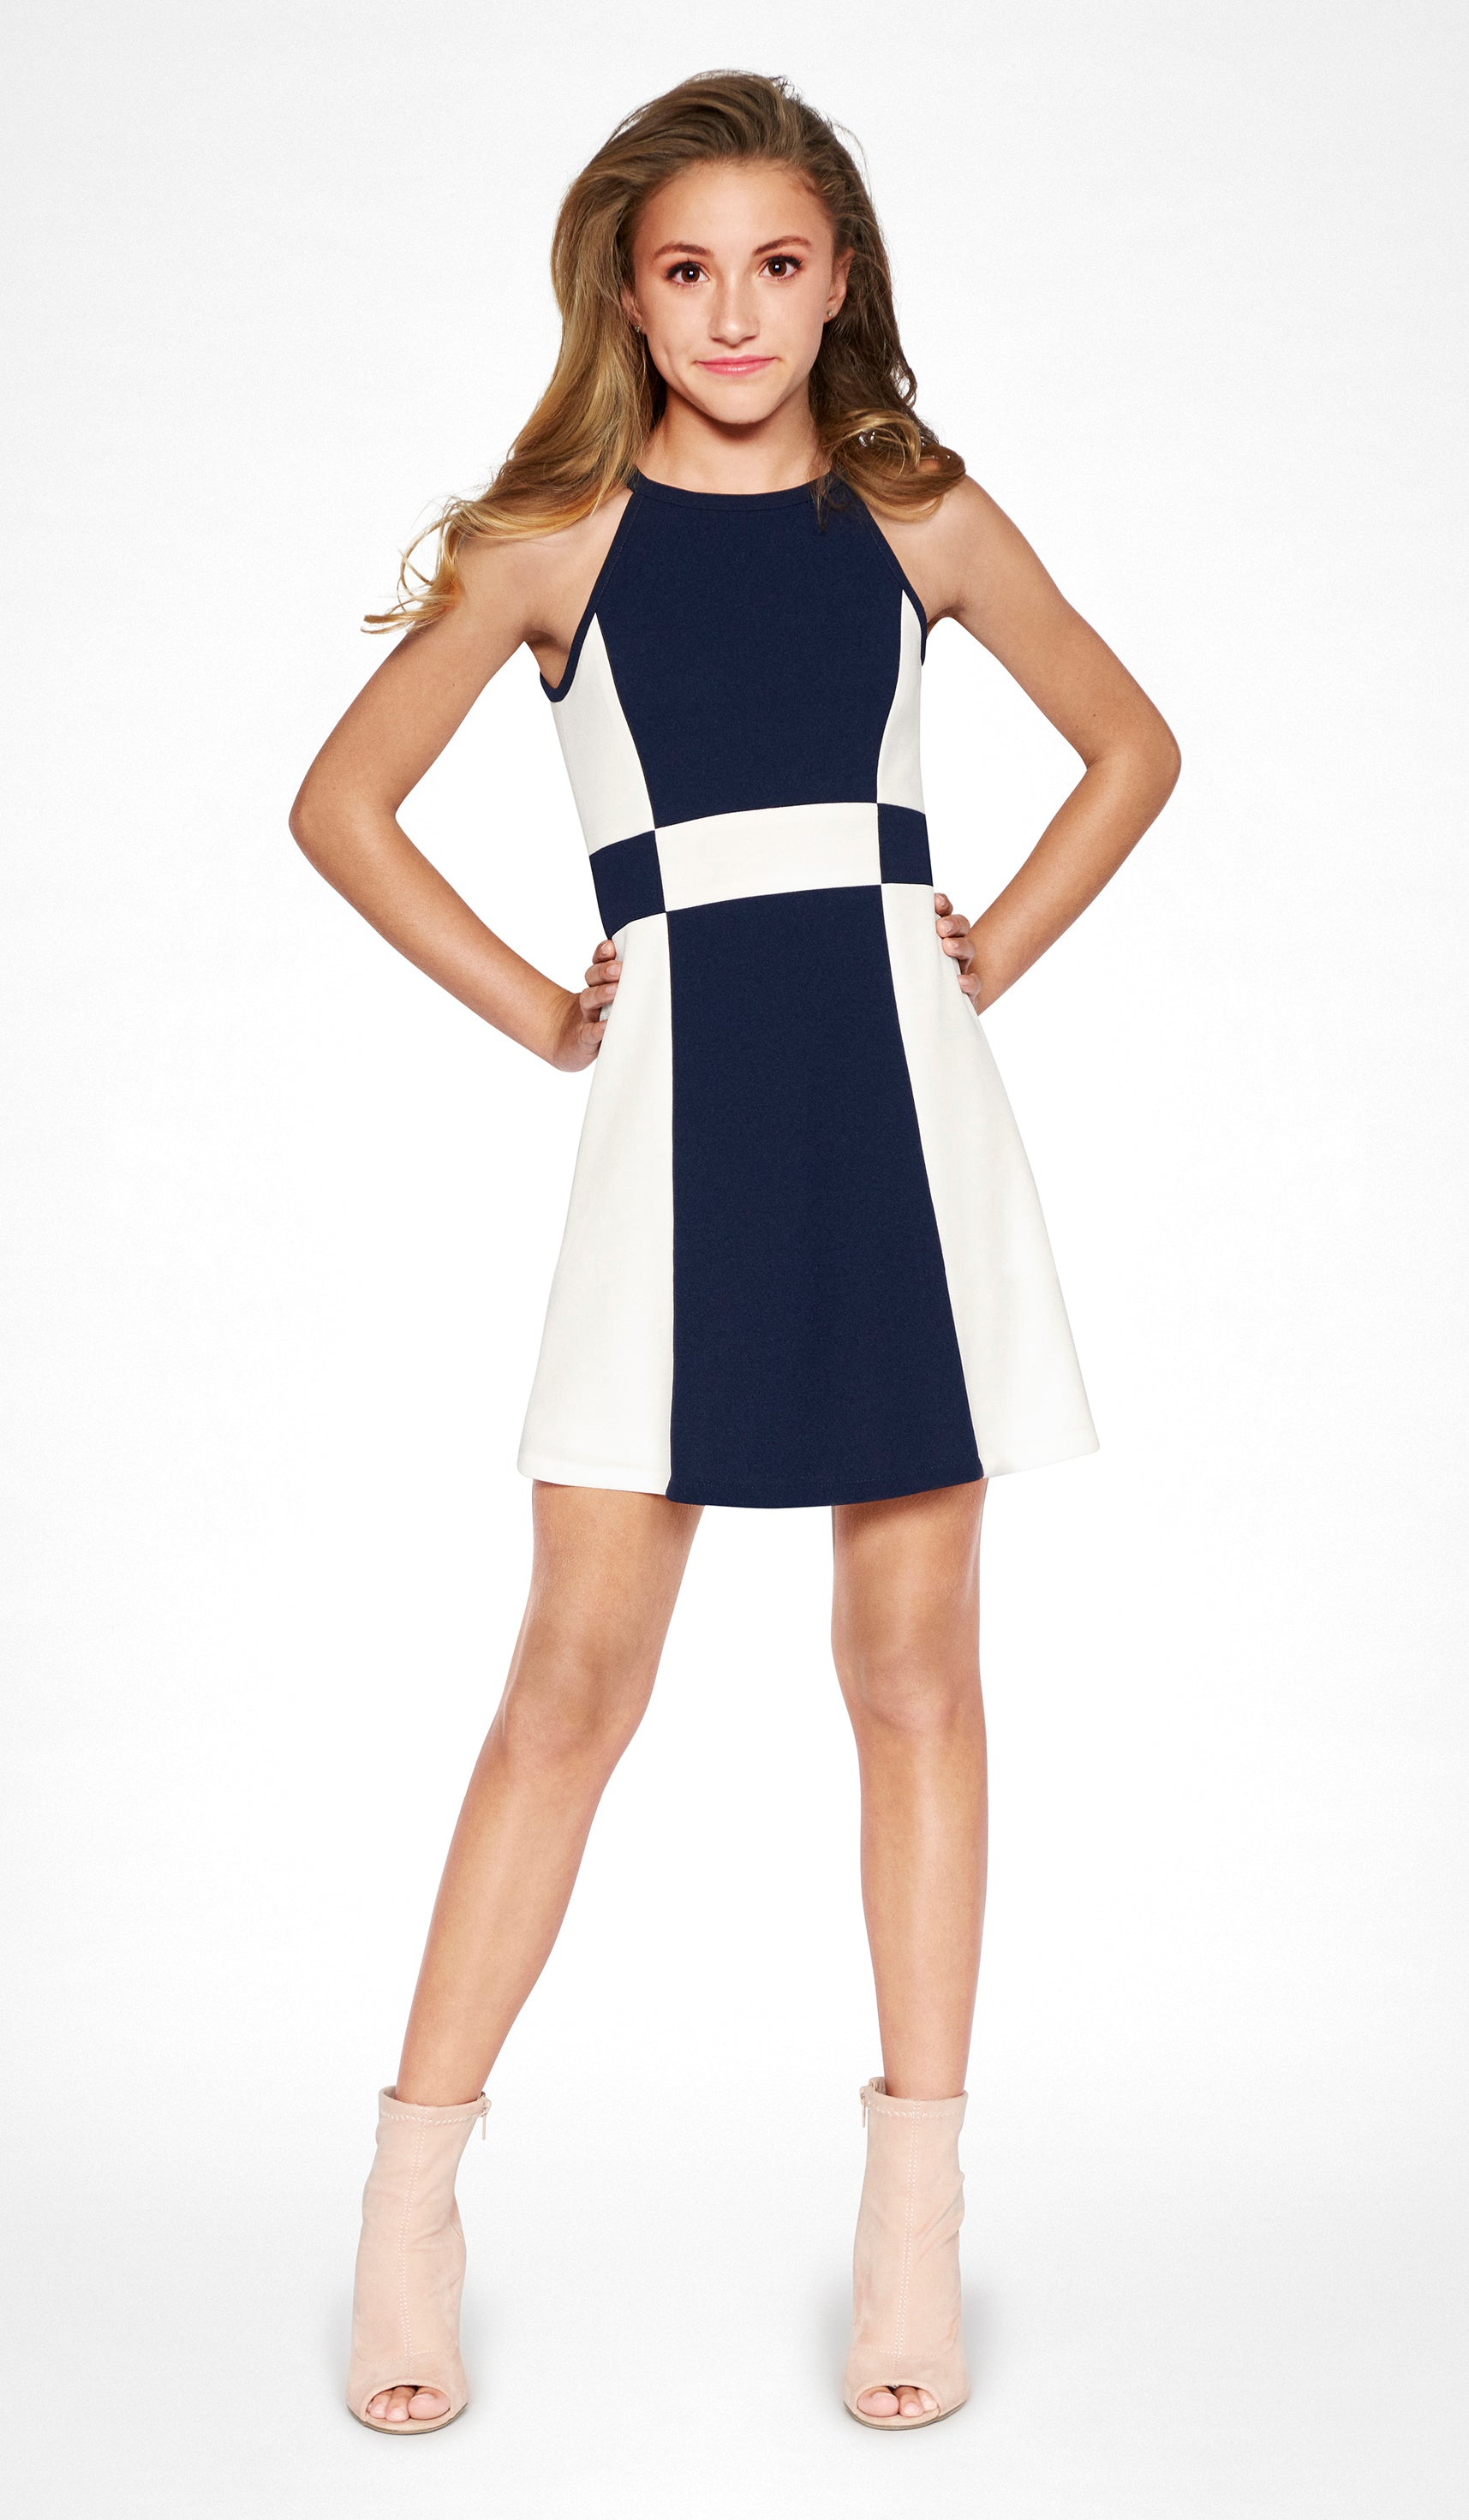 Modern Navy and Ivory color block stretch crepe georgette dress with button back closure The Peggy Dress Sally Miller